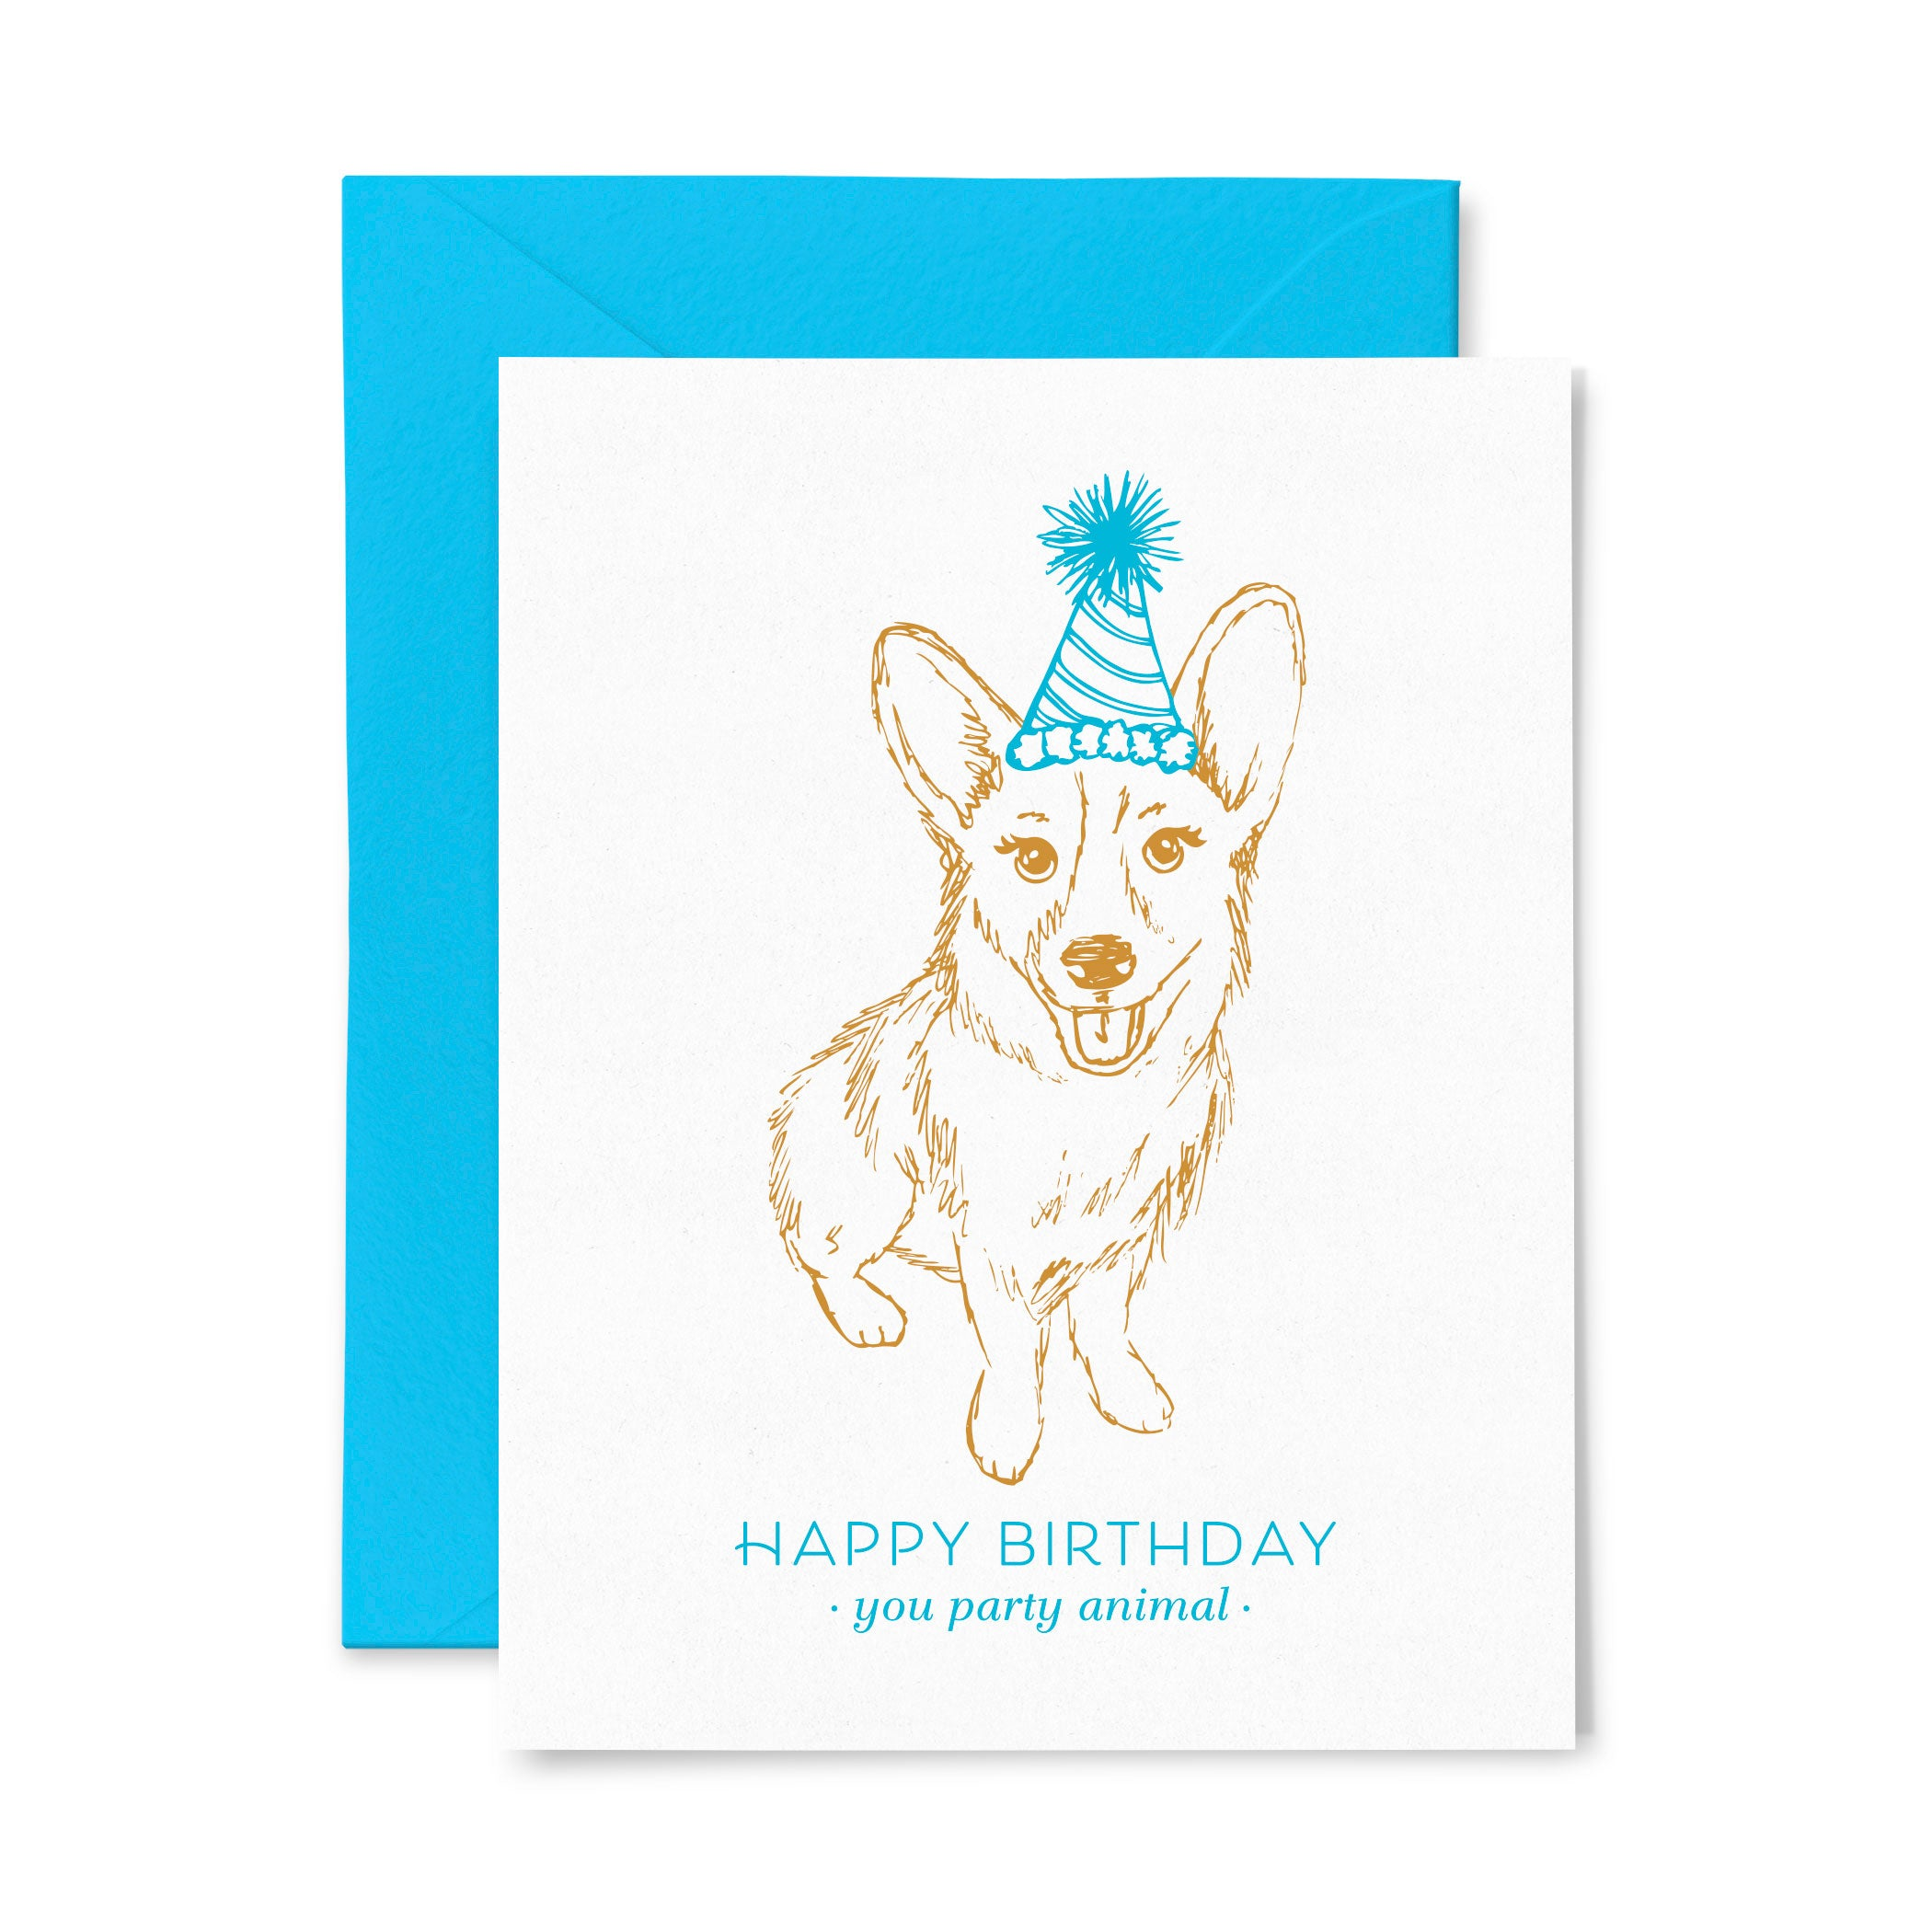 Corgi | Birthday | Letterpress Greeting Card